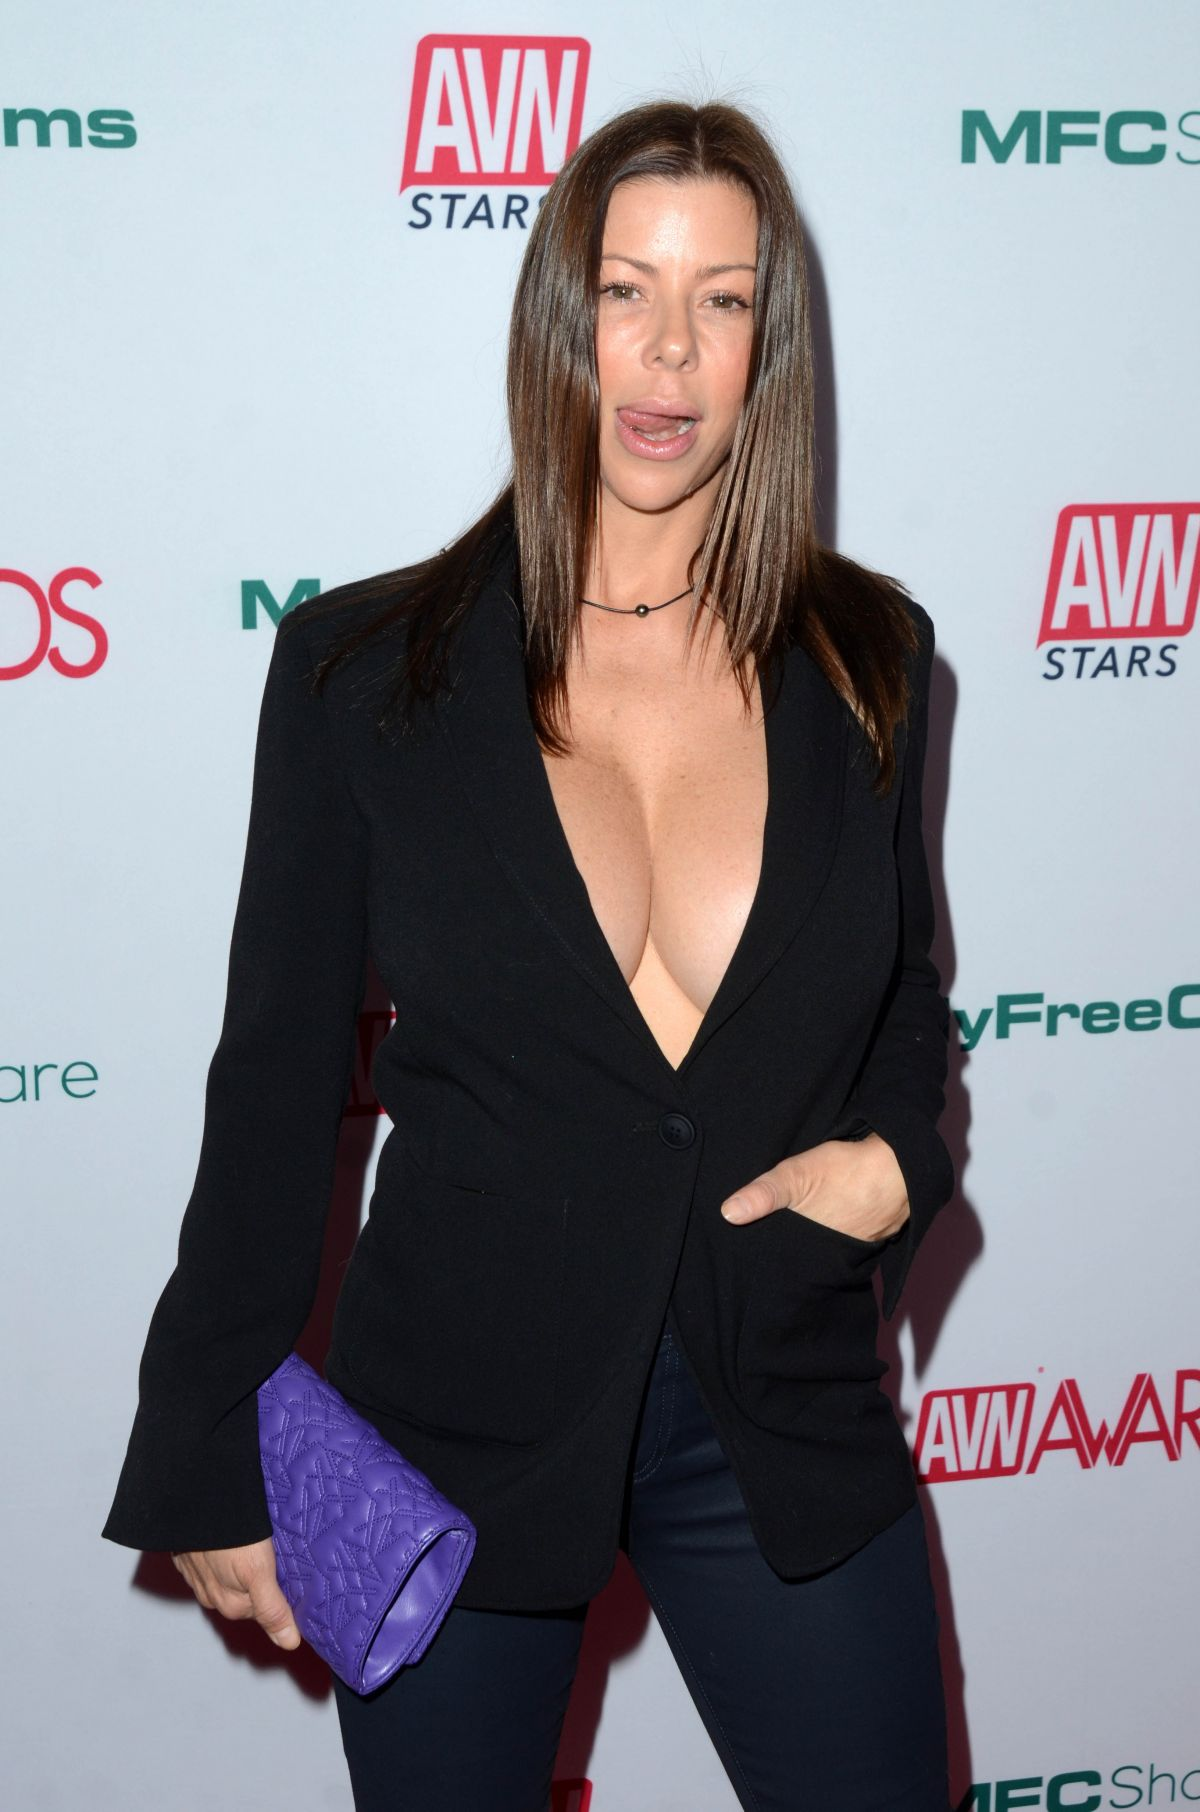 ALEXIS FAWX at AVN Awards Nominations Announcement in